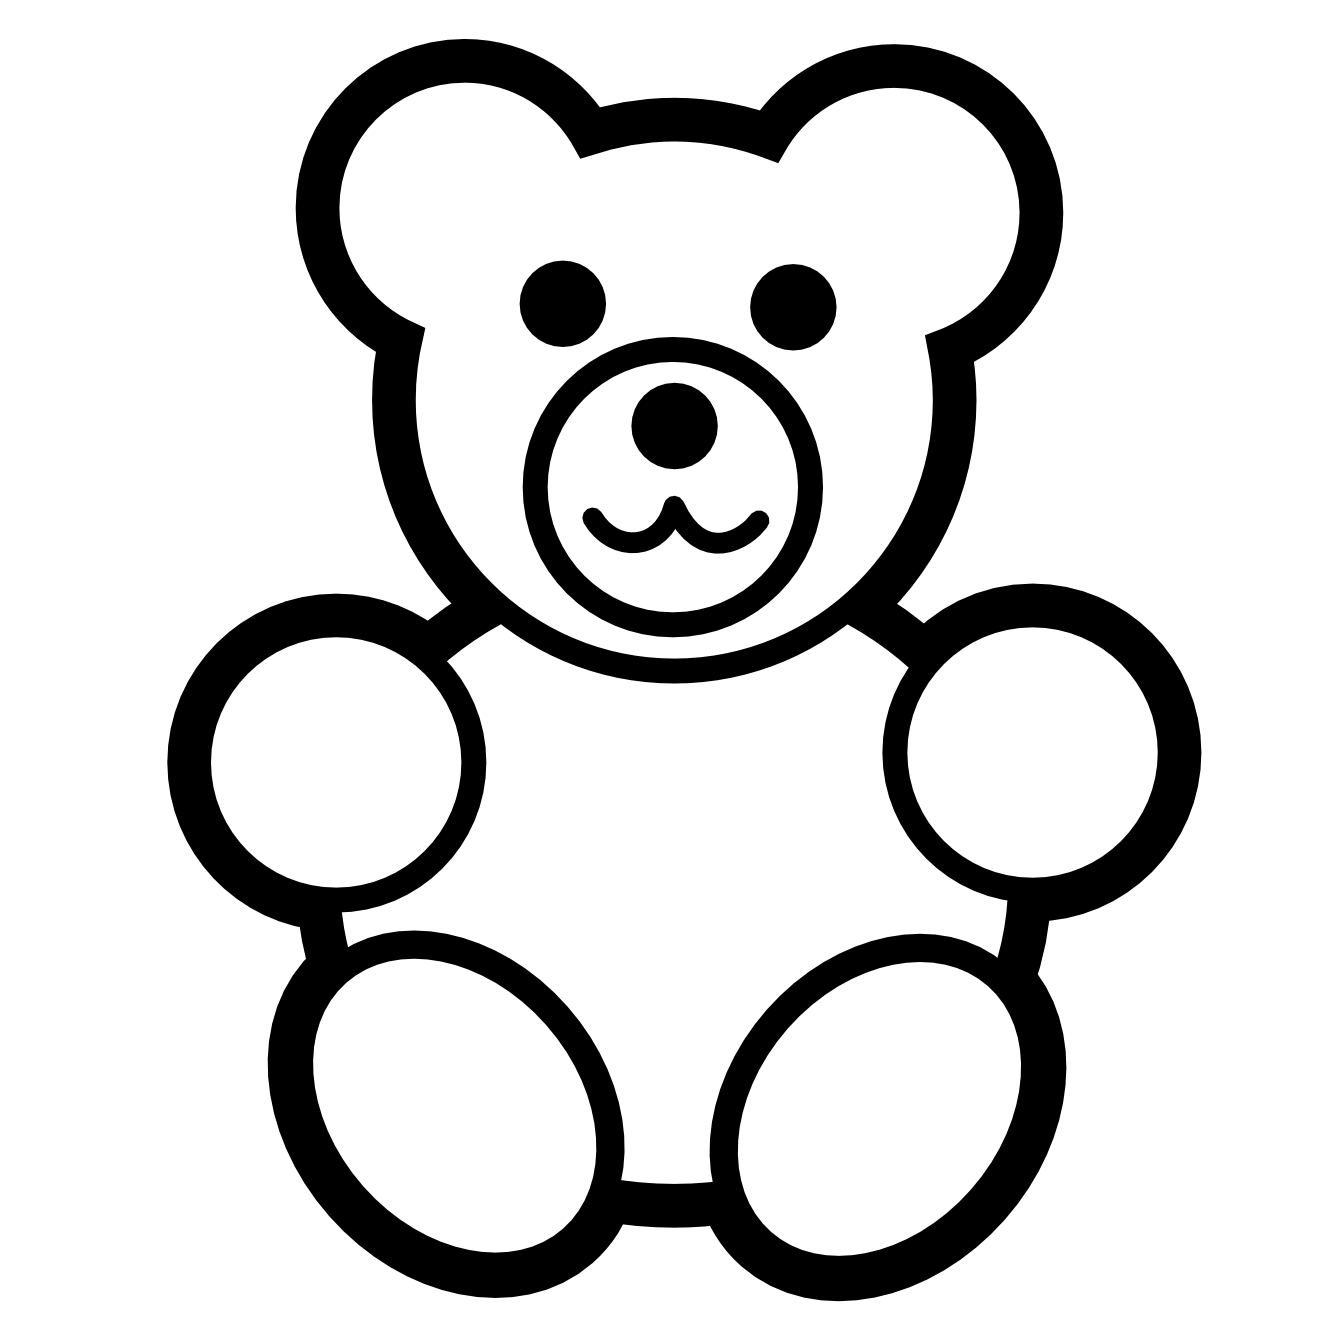 Noodle clipart ring. Christmas teddy bear net